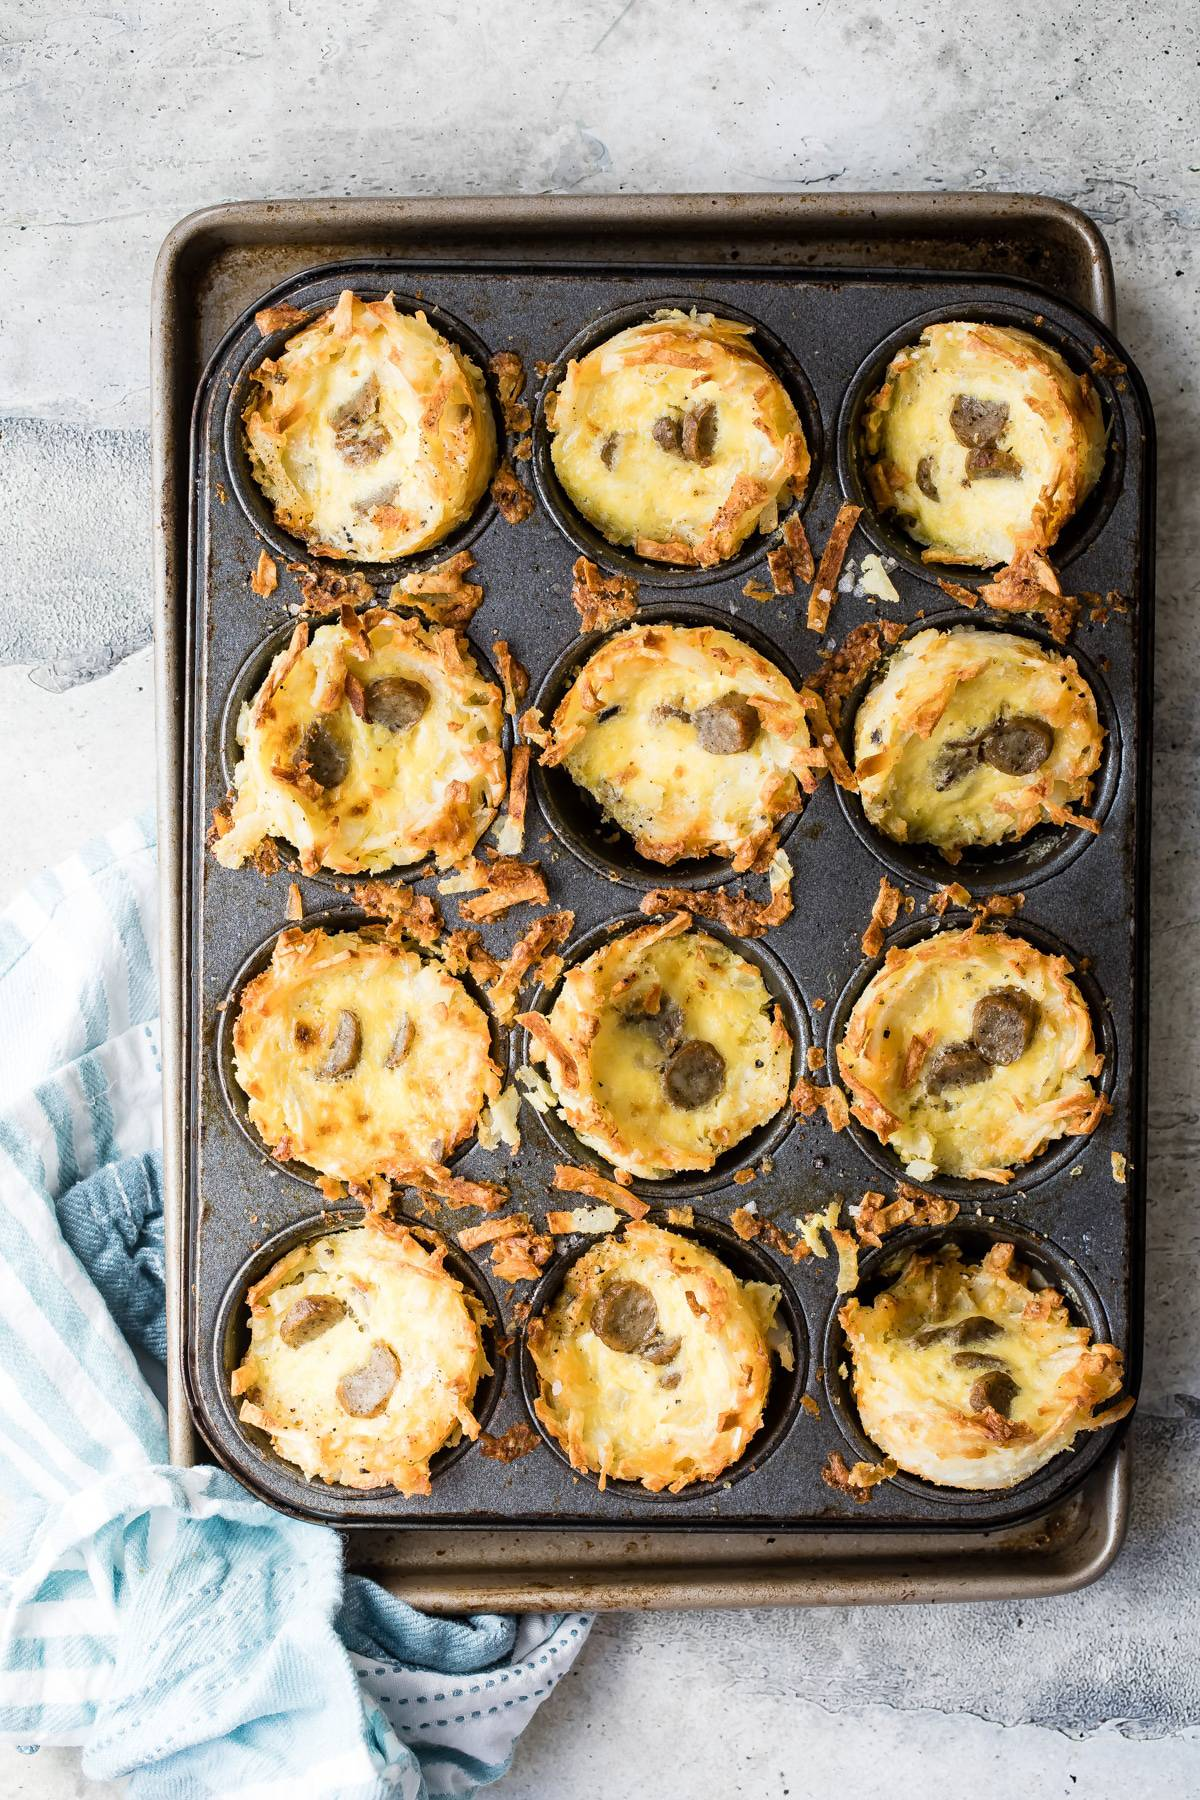 egg and sausage nests in a muffin pan